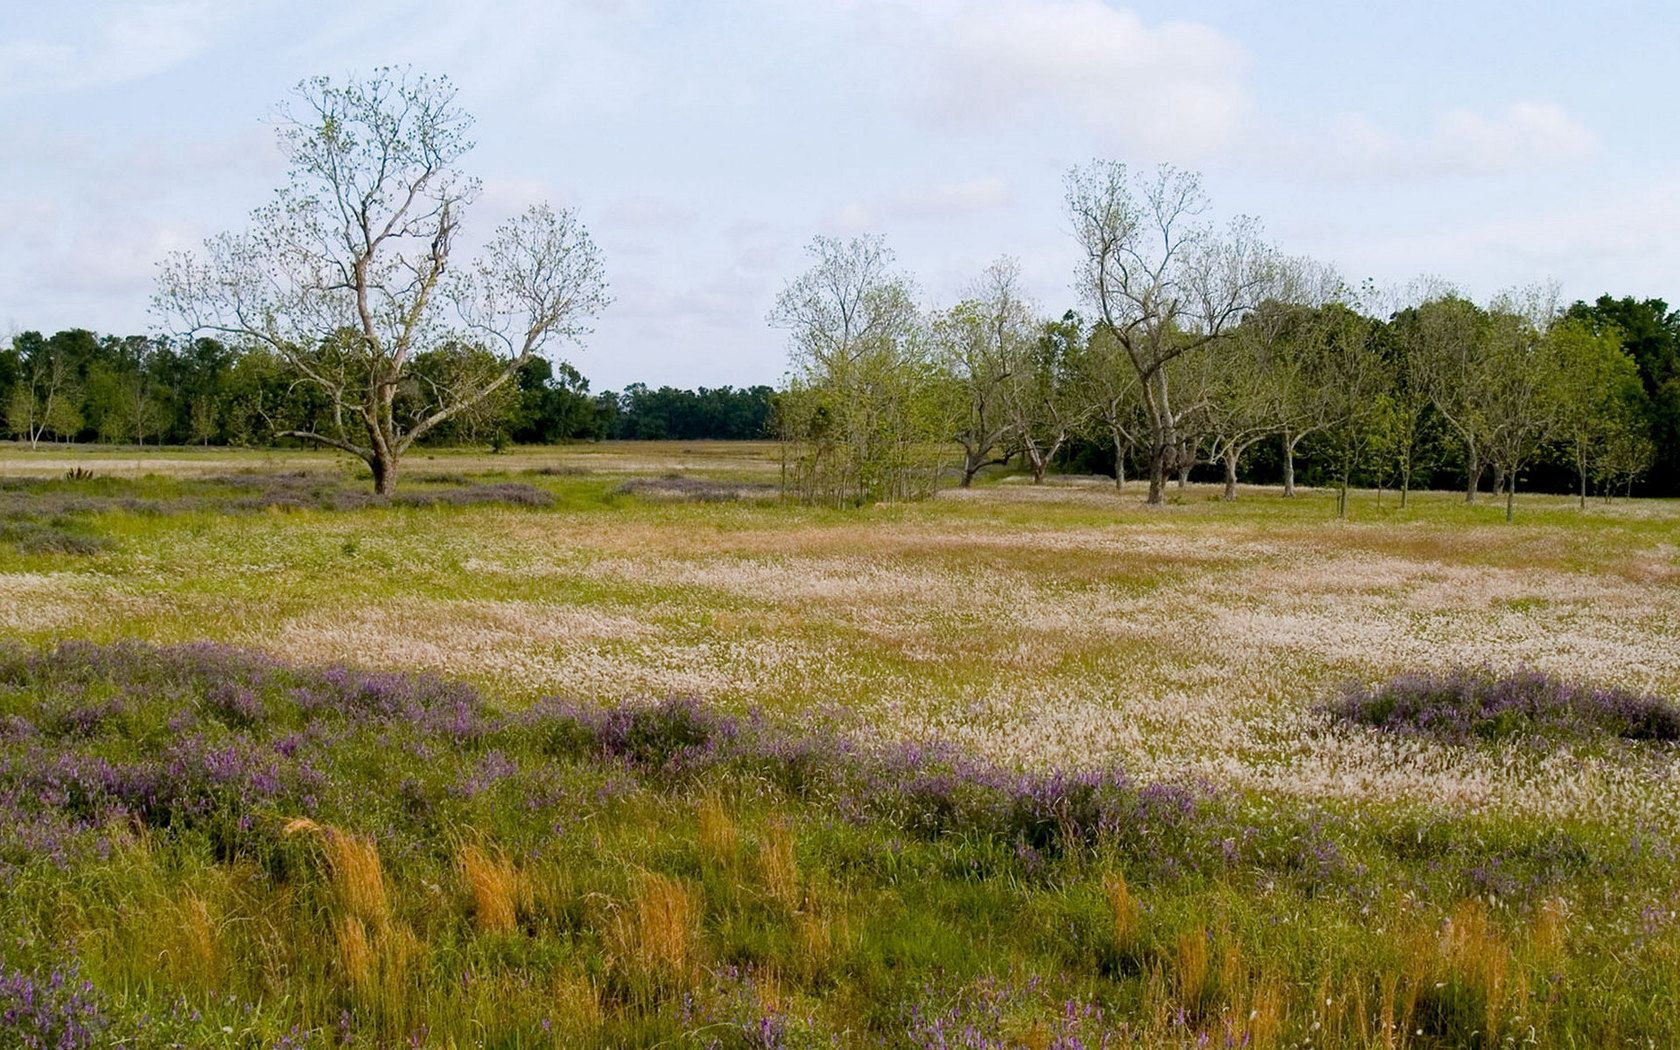 113031 download wallpaper Nature, Field, Trees, Meadow, Flowers screensavers and pictures for free